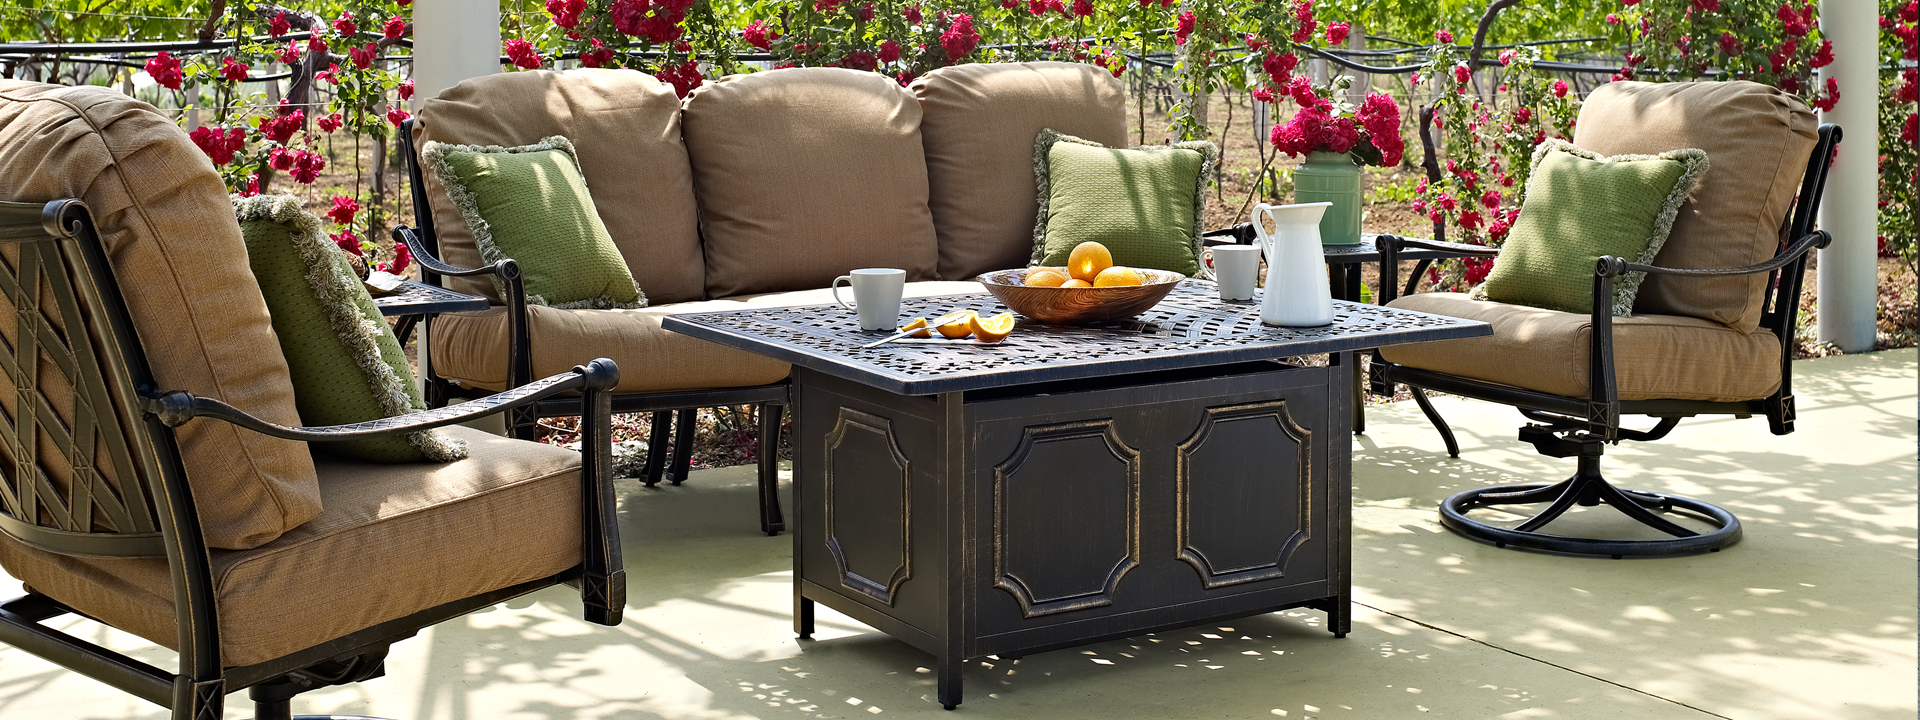 100 patio furniture houston for open best of patio for Outdoor furniture houston